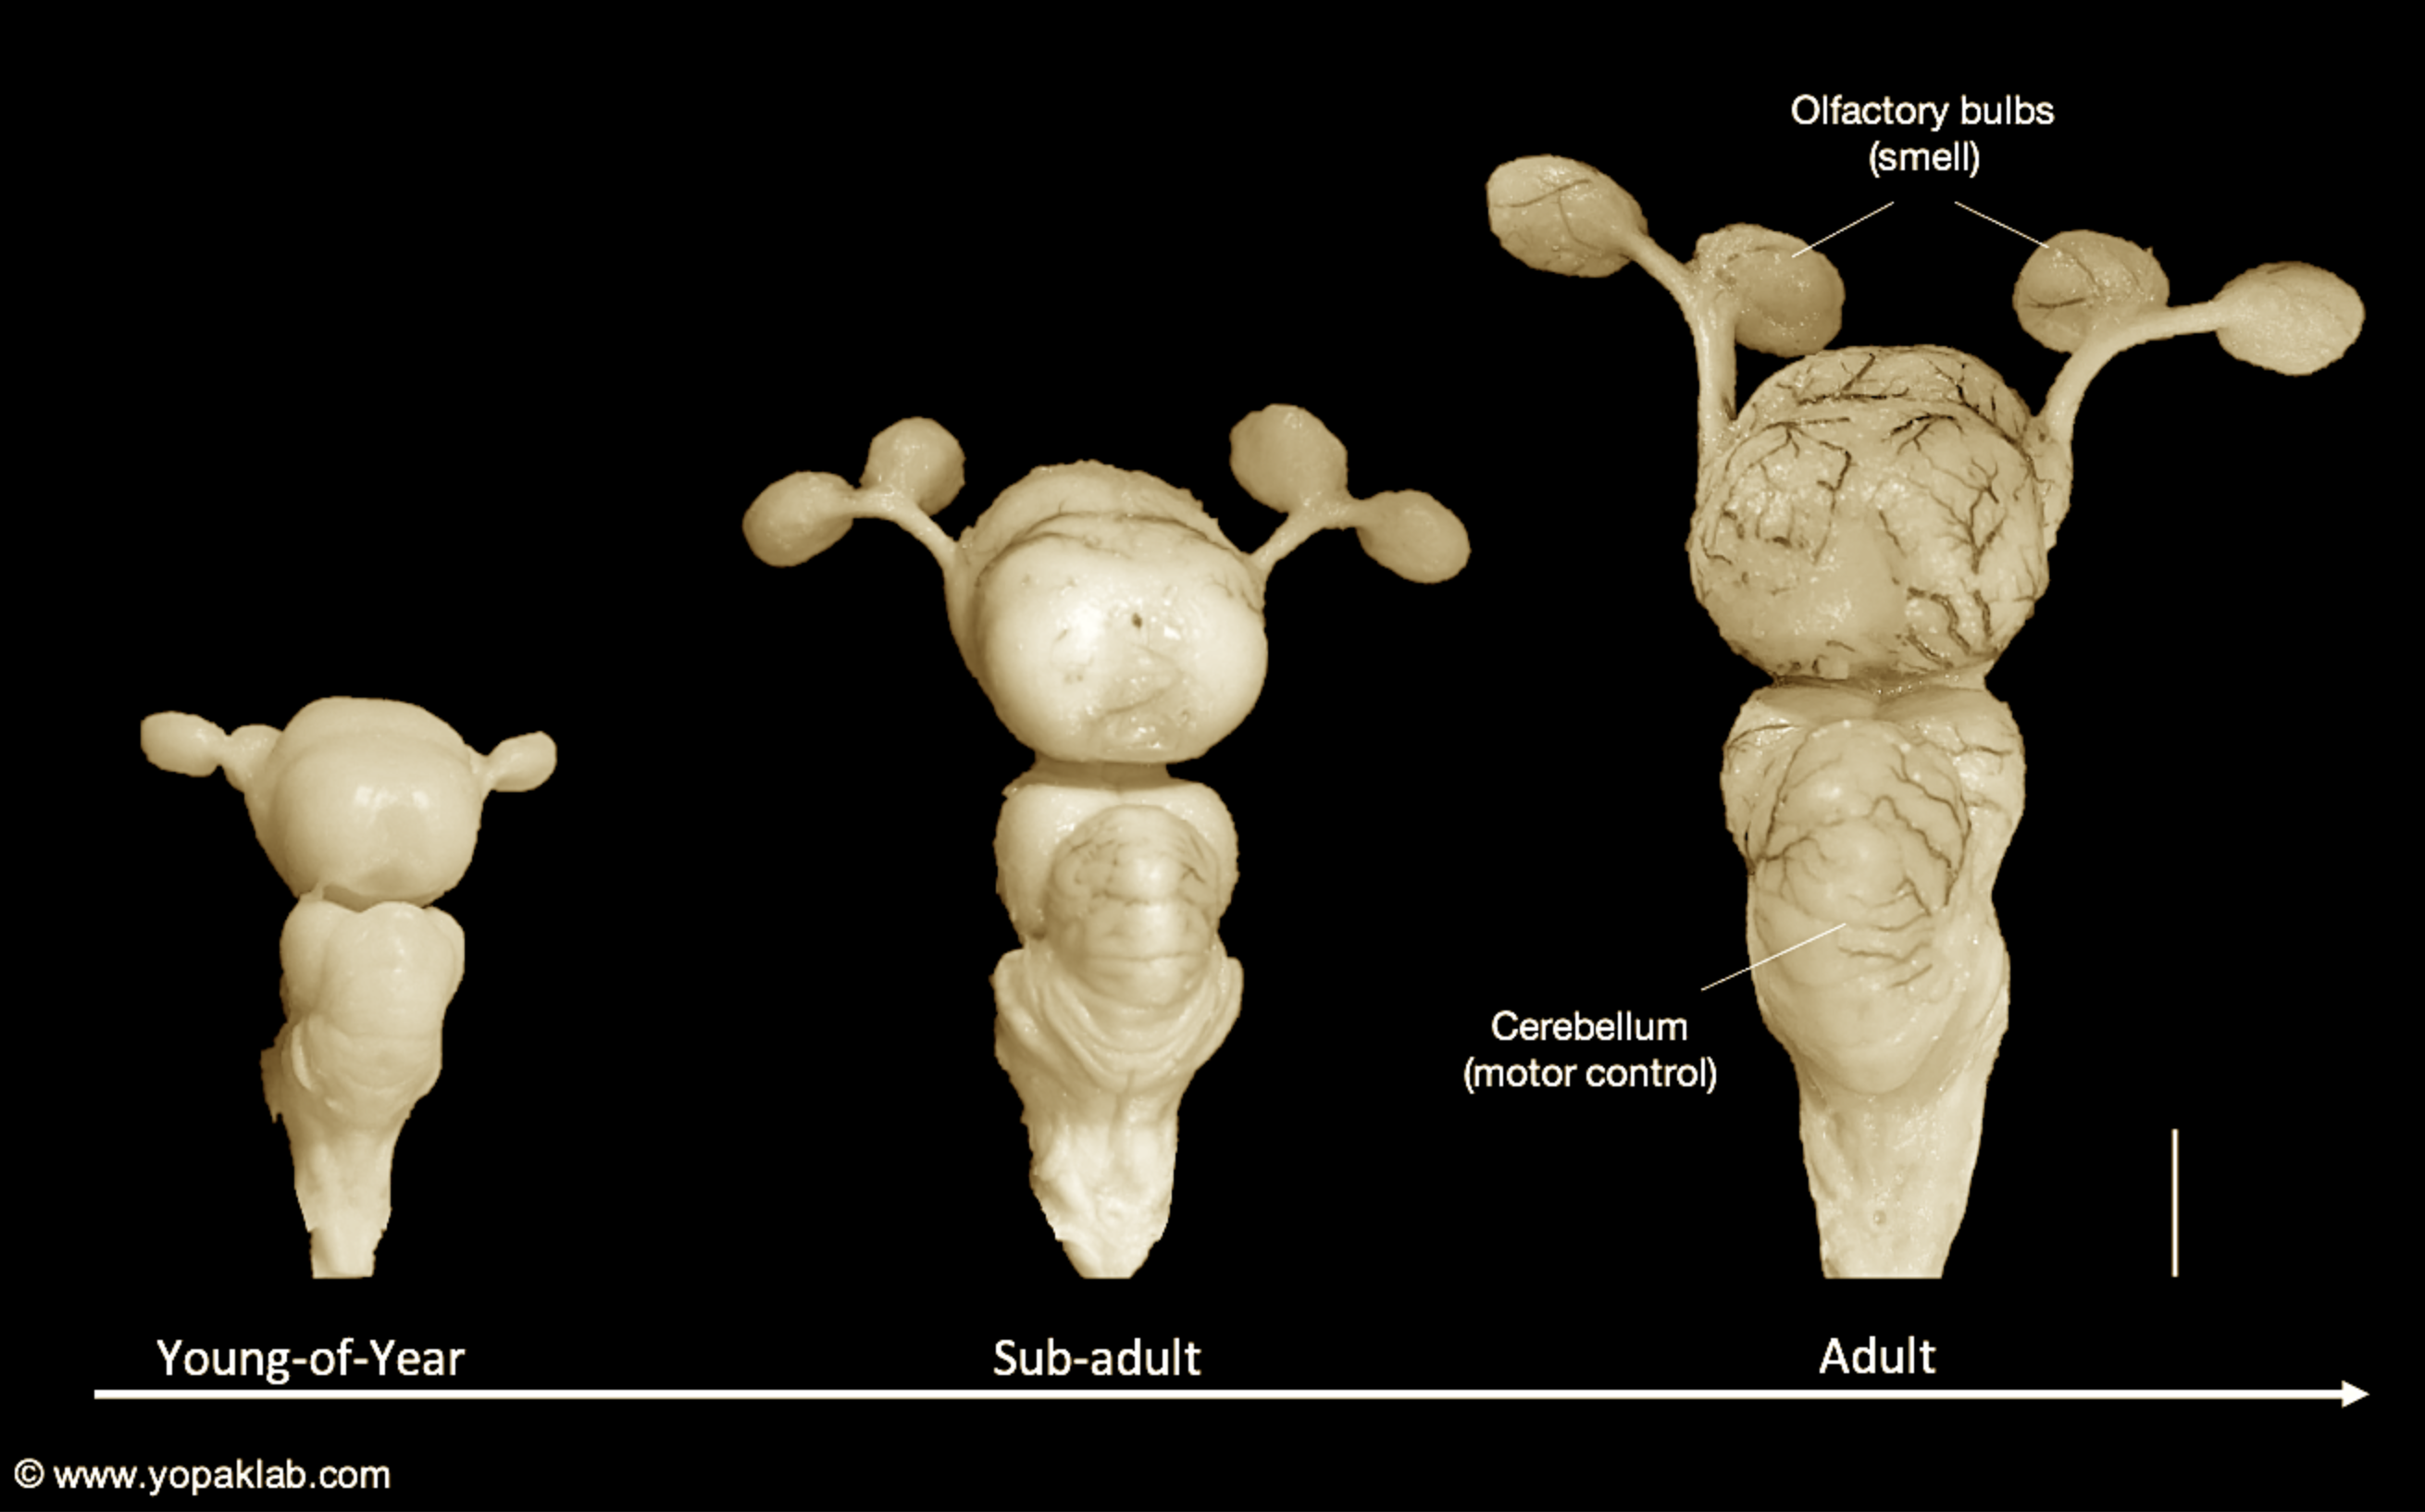 The brain of an Atlantic sharpnose shark, showing the regions that process smell (olfactory bulbs) and motor control (cerebellum) across life stages, including adulthood (far right). Scale: The vertical bar to the right of the adult brain equals 2 cm. Images adapted from Laforest et al. (2019). All rights reserved.